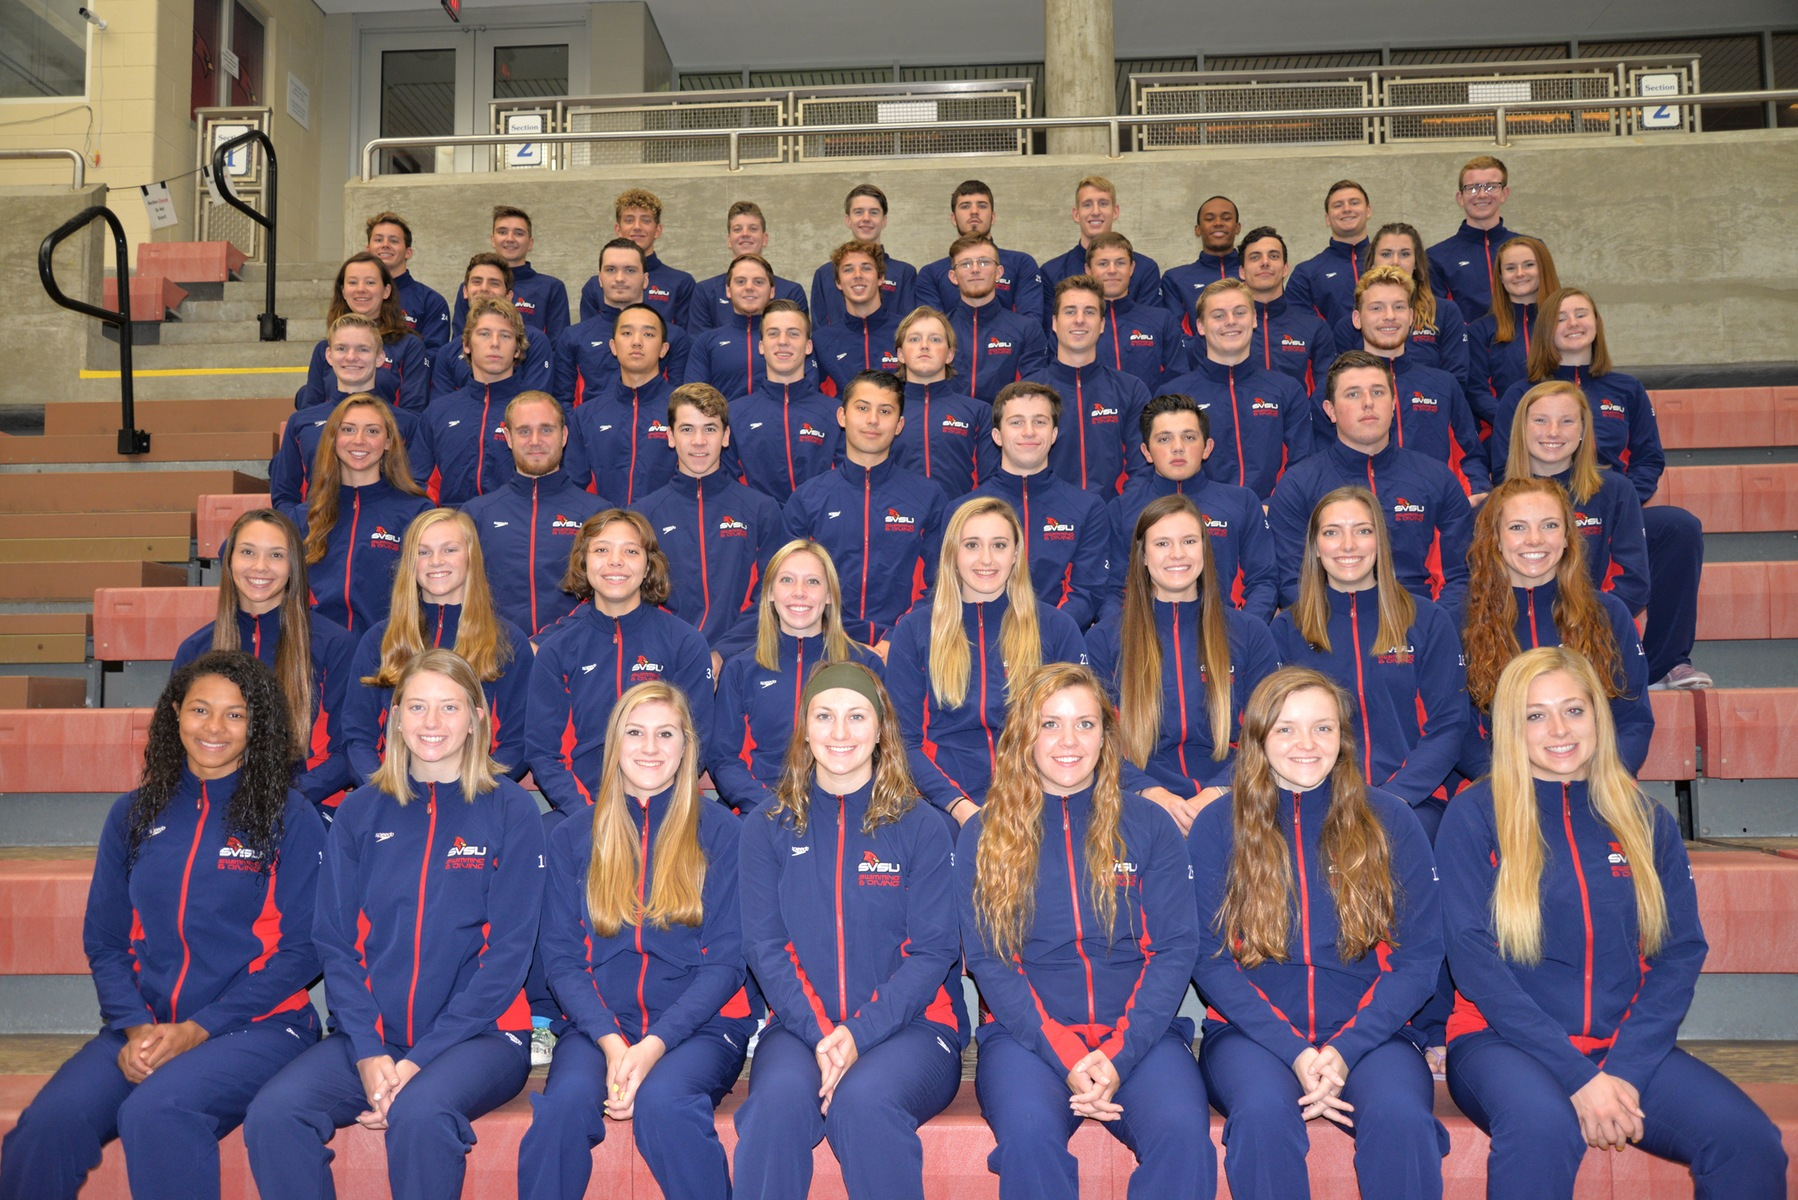 Cardinals defeat Scots in 2018-19 season opening meet